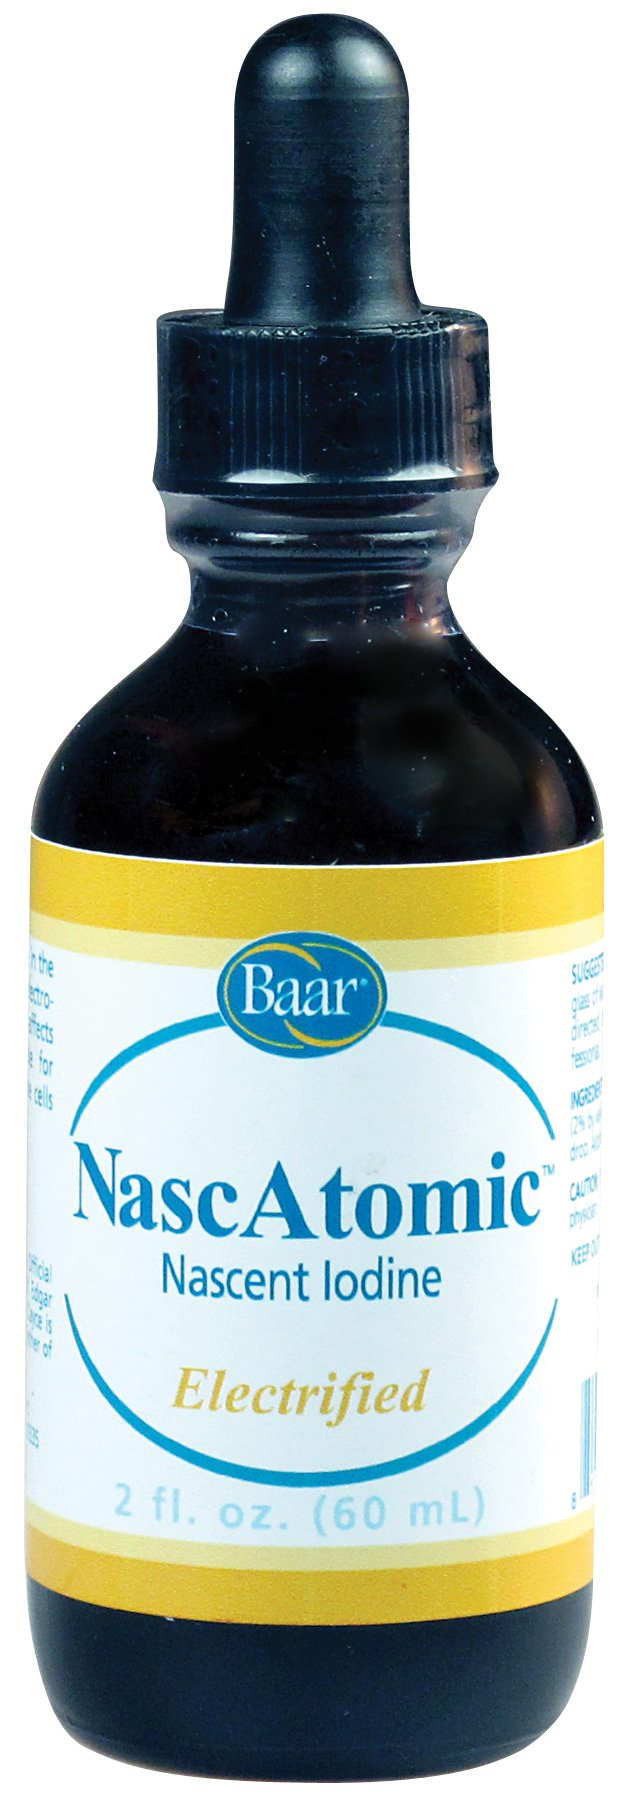 NascAtomic, Electrified Nascent Iodine 2%, 2 fl. oz. by Baar